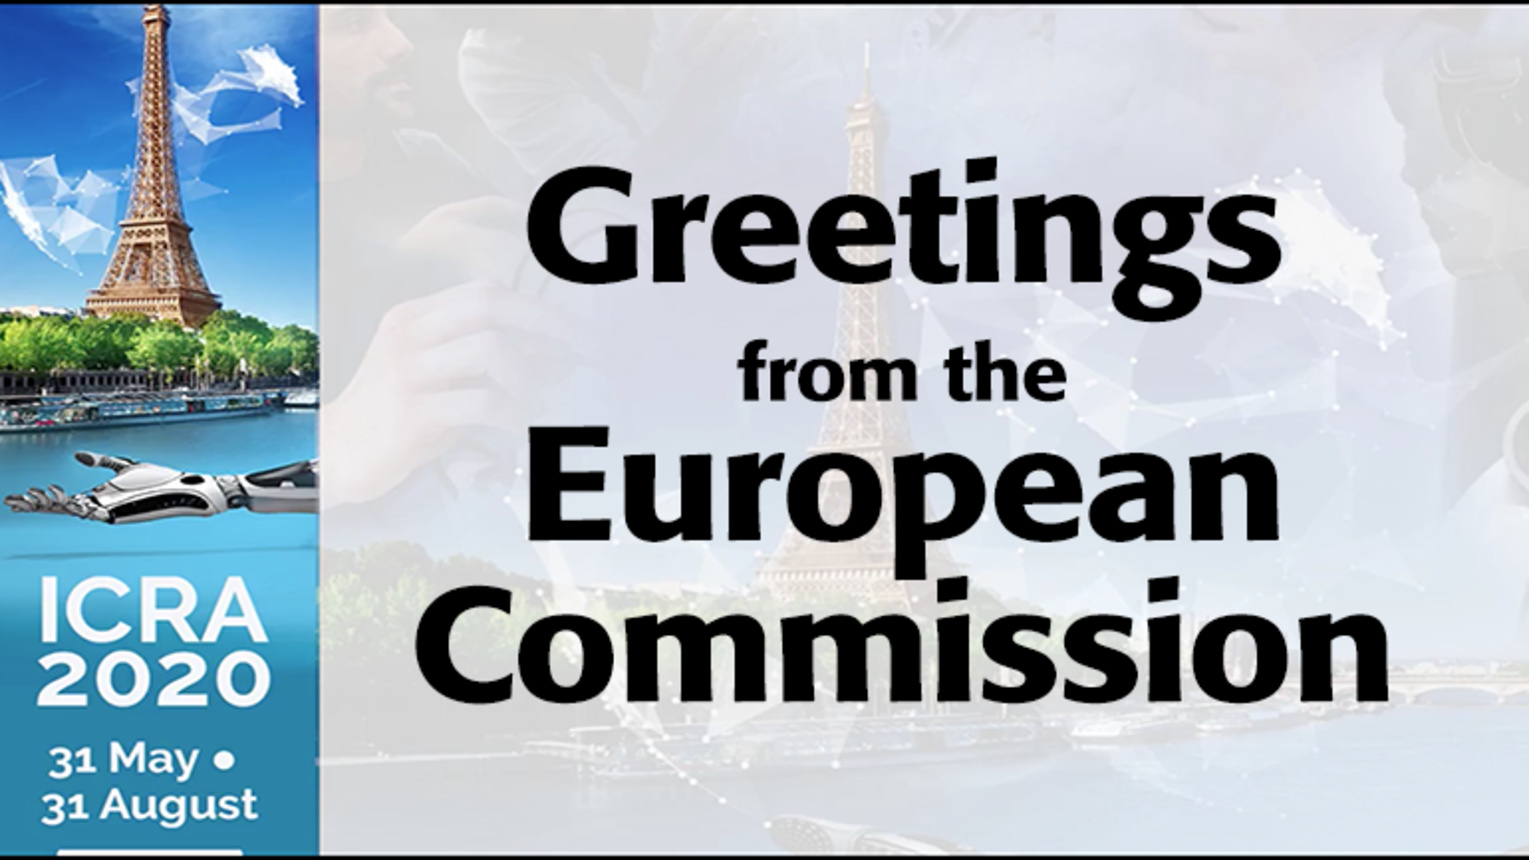 Greetings from the European Commission: ICRA 2020